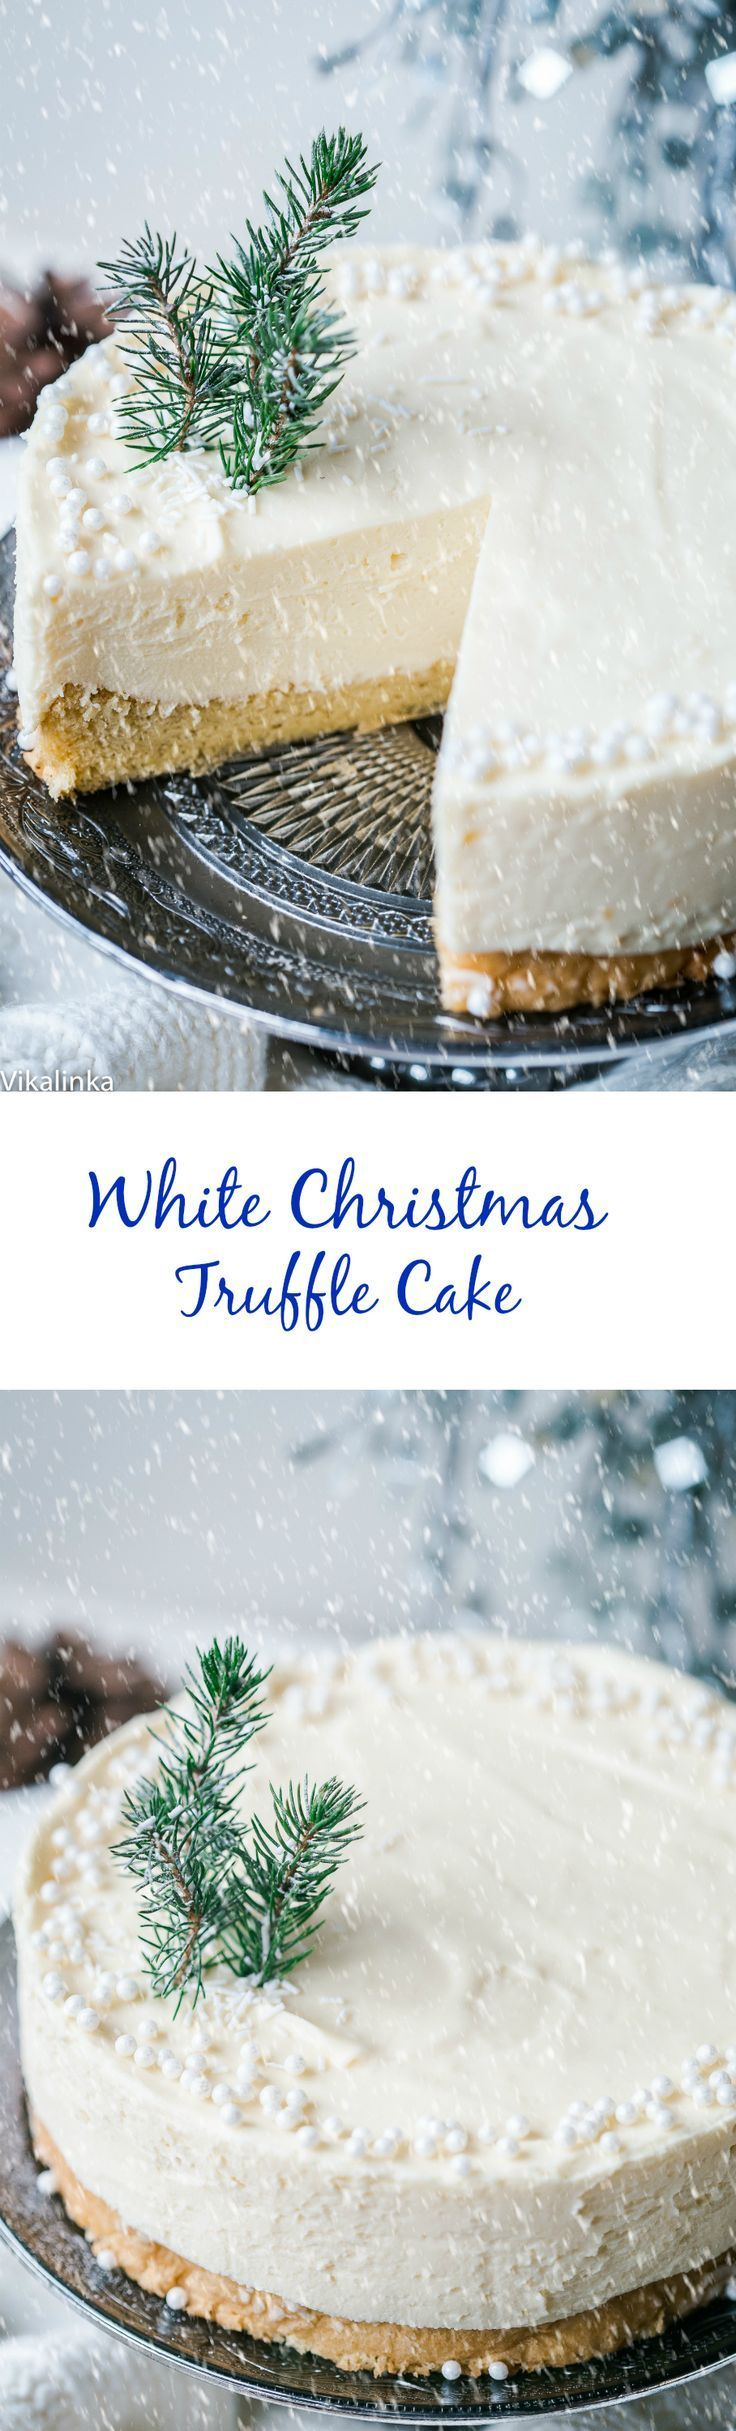 White Chocolate Truffle Cake that will become the talk of the table at any dinner party! More #christmasparties